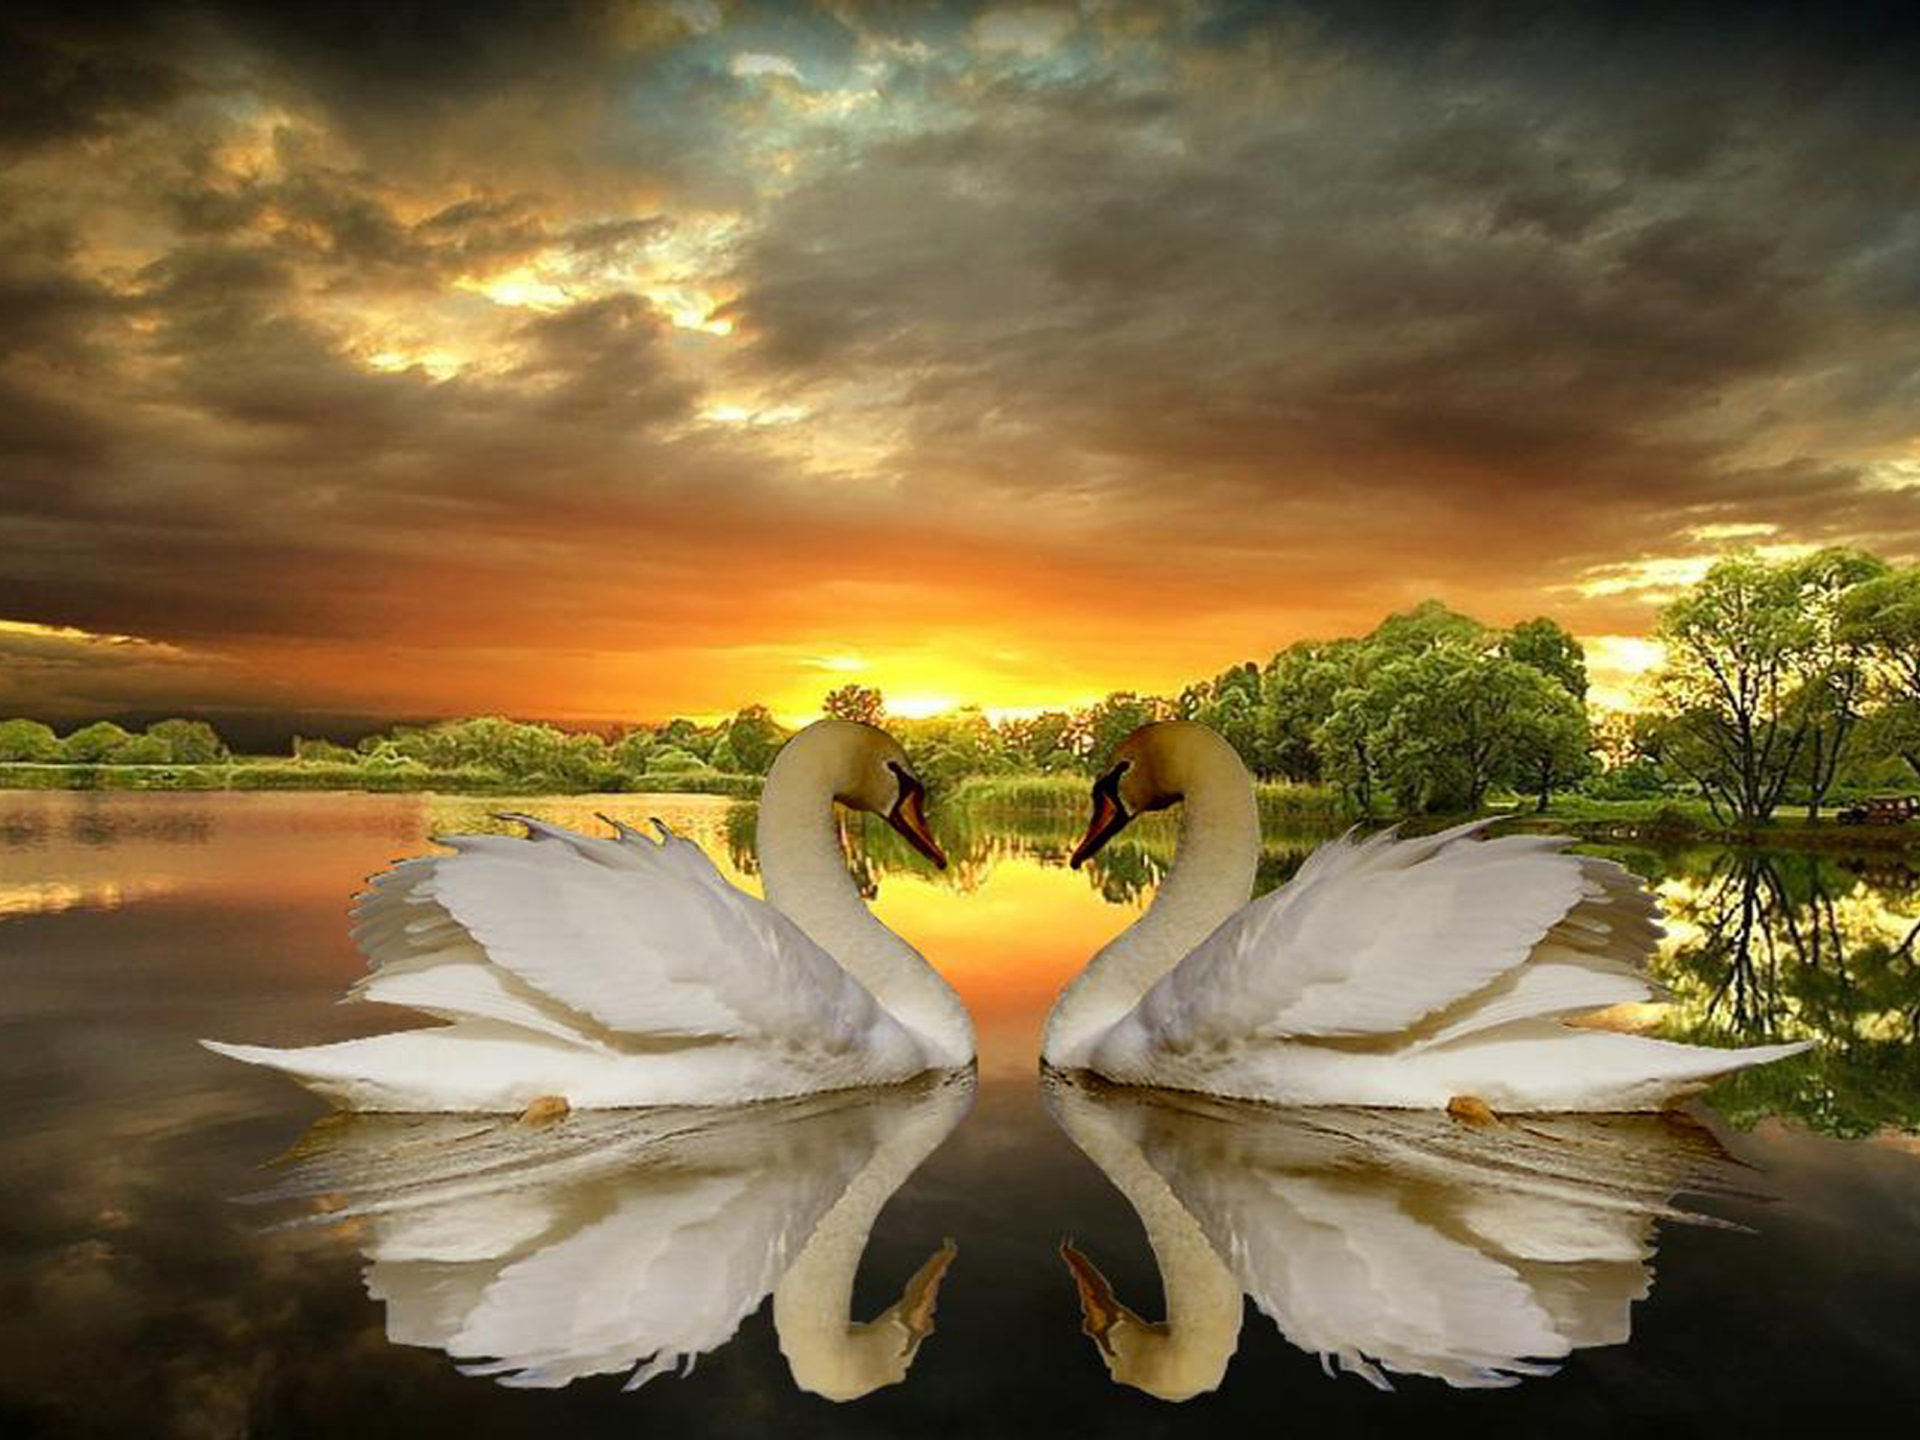 Fall Wallpaper For Laptops Love Of Swans Lake Trees Dark Clouds Sunset Desktop